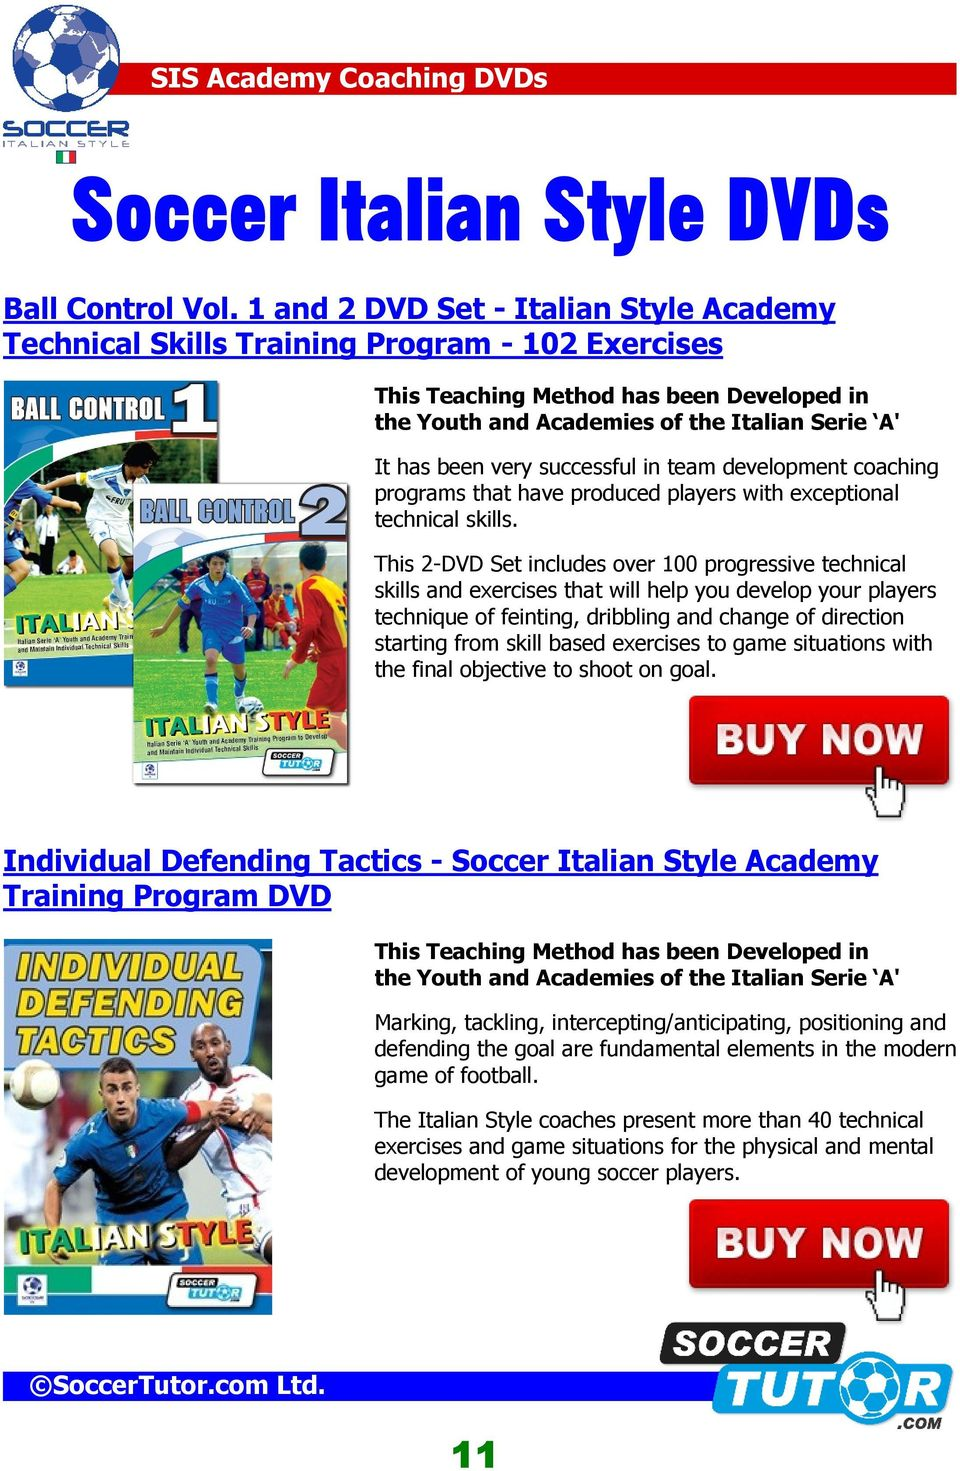 successful in team development coaching programs that have produced players with exceptional technical skills.